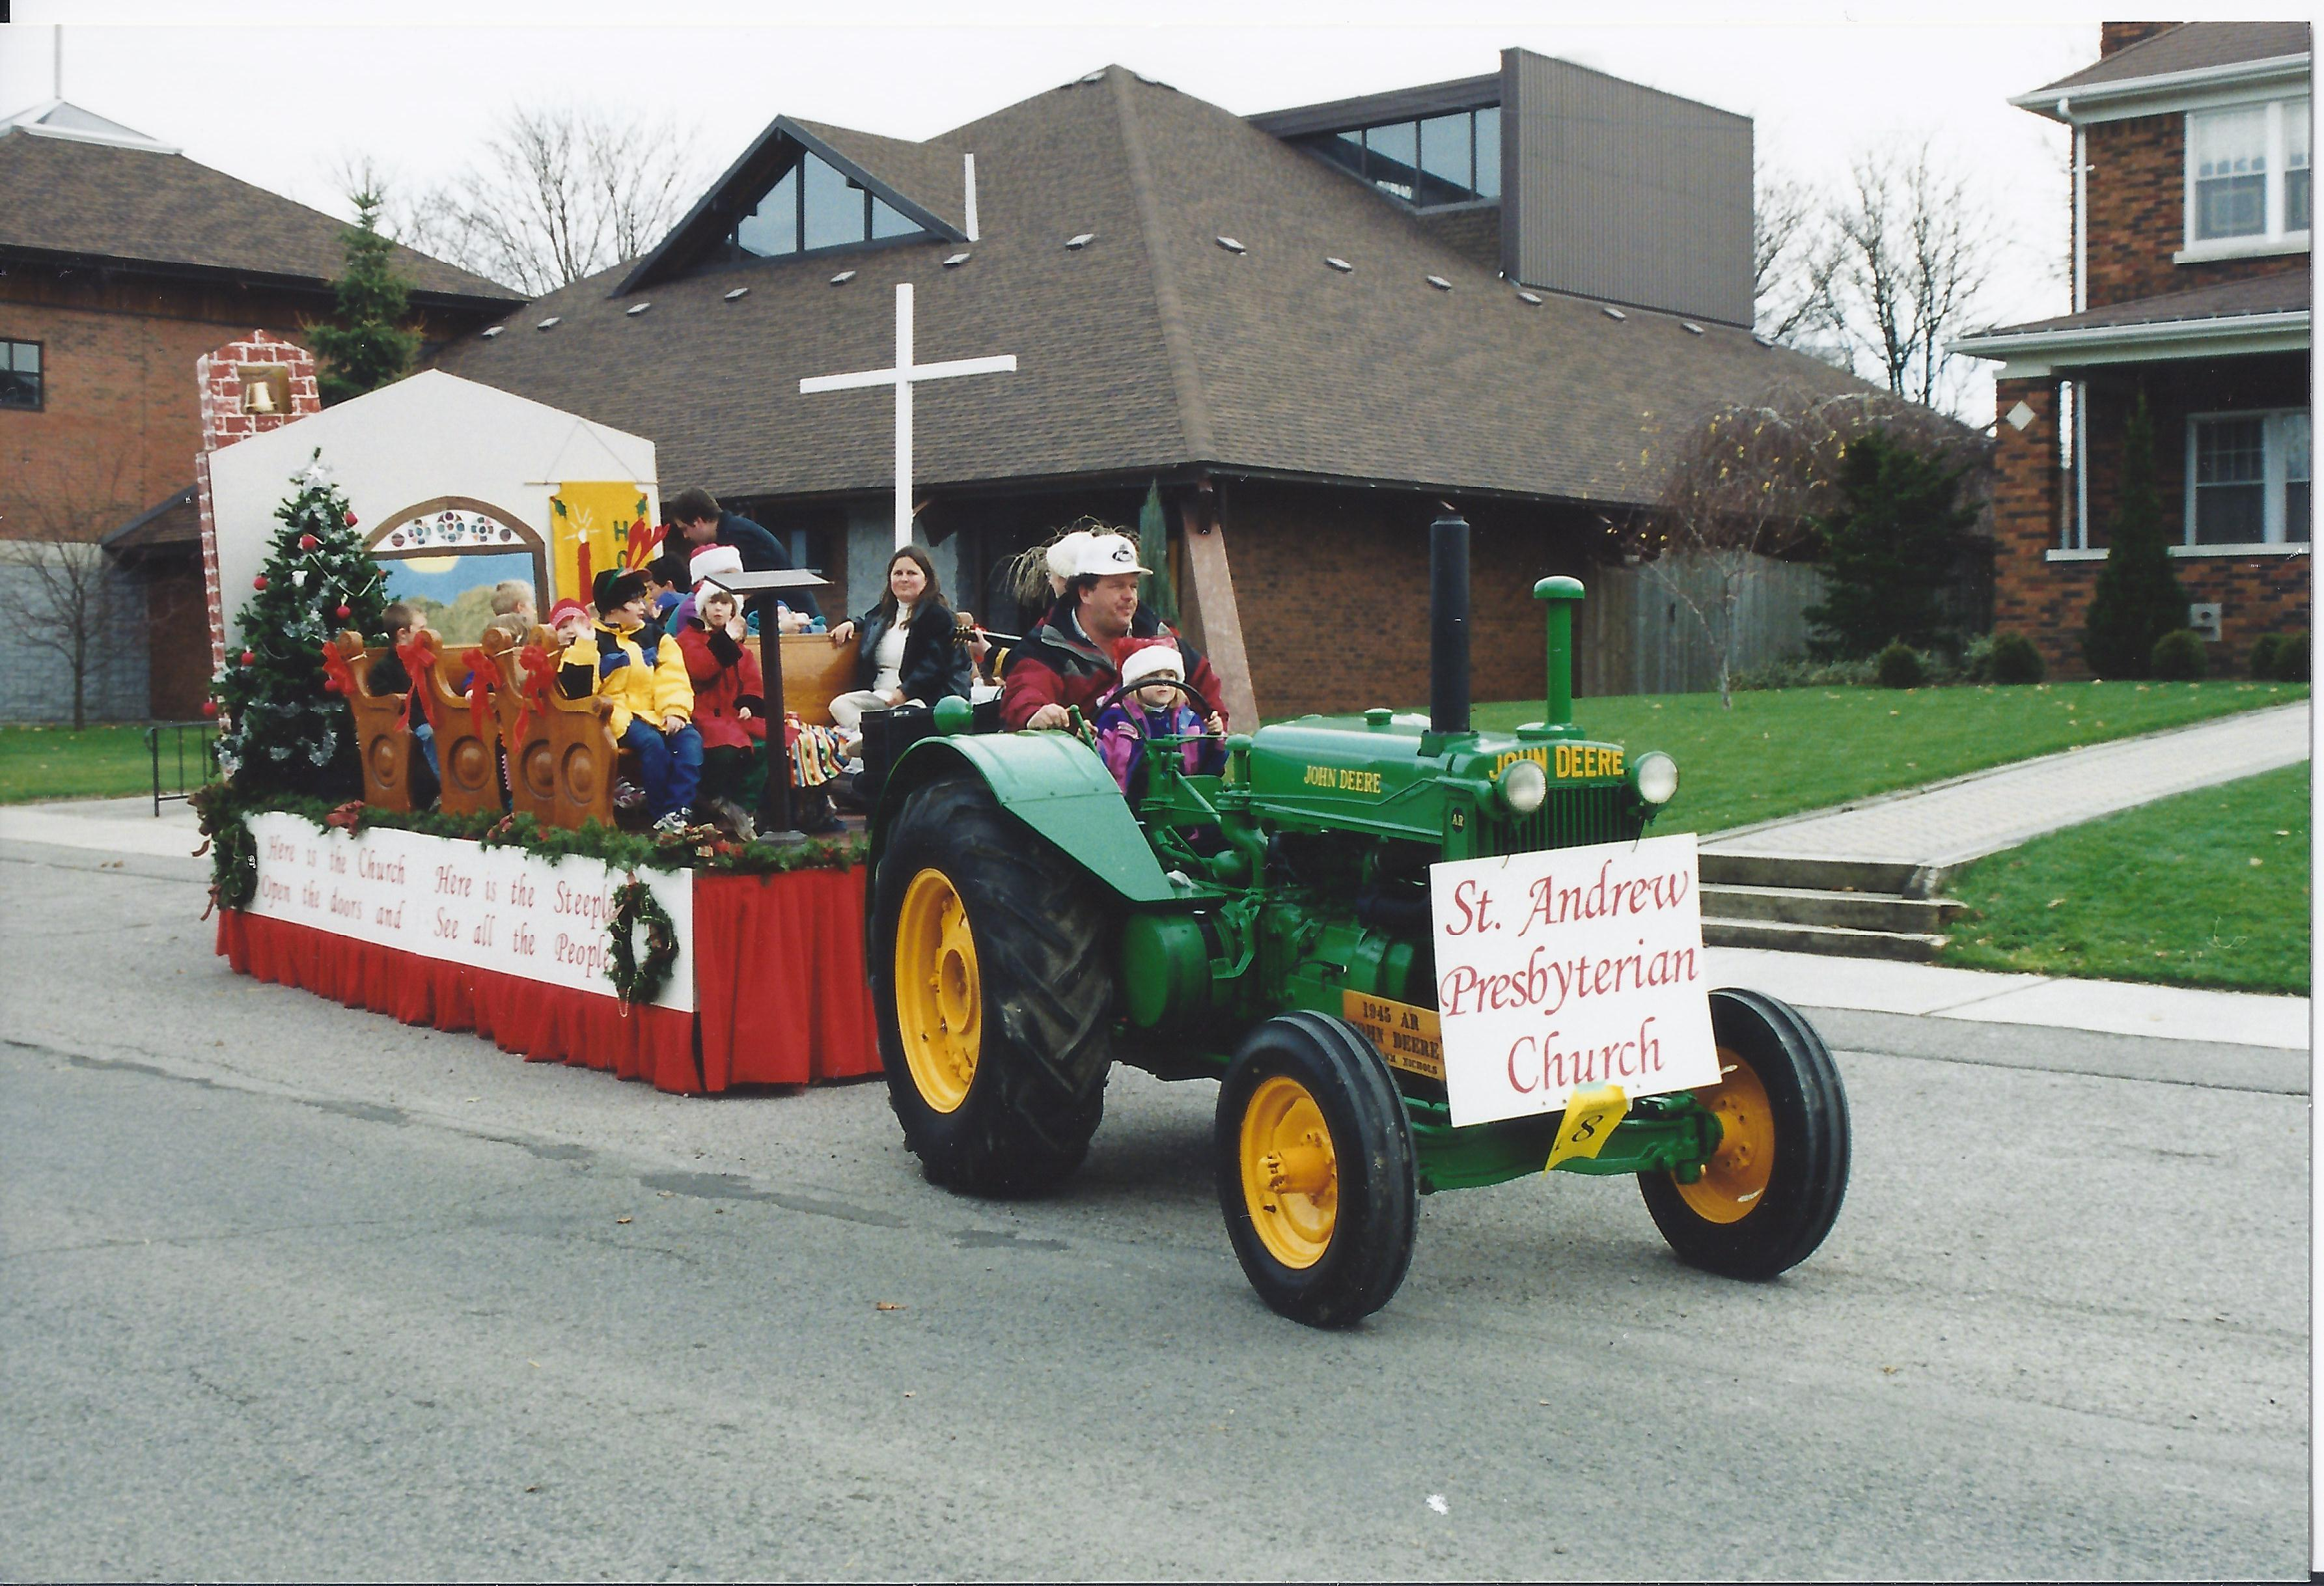 Church Parade Float Ideas http://bloomingreverend.com/2011/11/20/everyone-loves-a-parade/